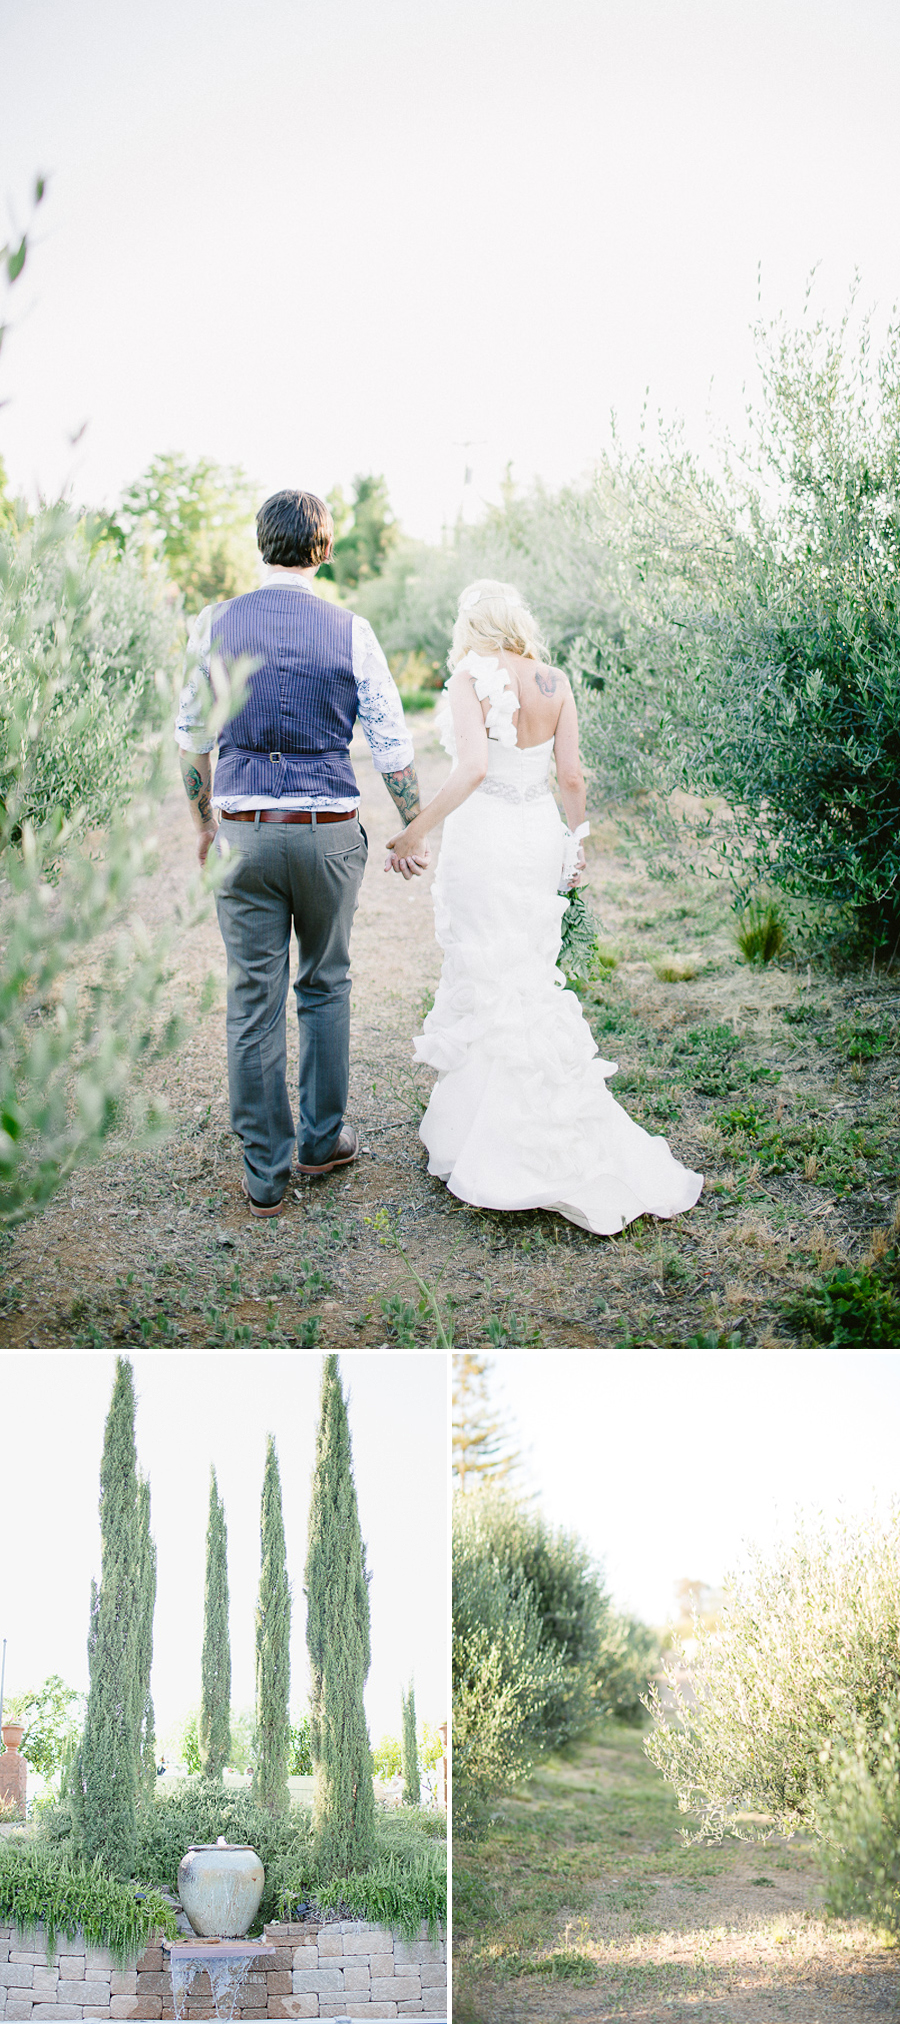 olive grove wedding, bride and groom olive grove, fine art wedding portraits, gorgeous bride and groom, paso robles wedding, central coast wedding photographer, southern california fine art wedding photographer, vintage wedding, western themed wedding, victorian themed wedding, ranch wedding, farm wedding, fine art wedding photography, fine art wedding photographer, photography similar to jose villa